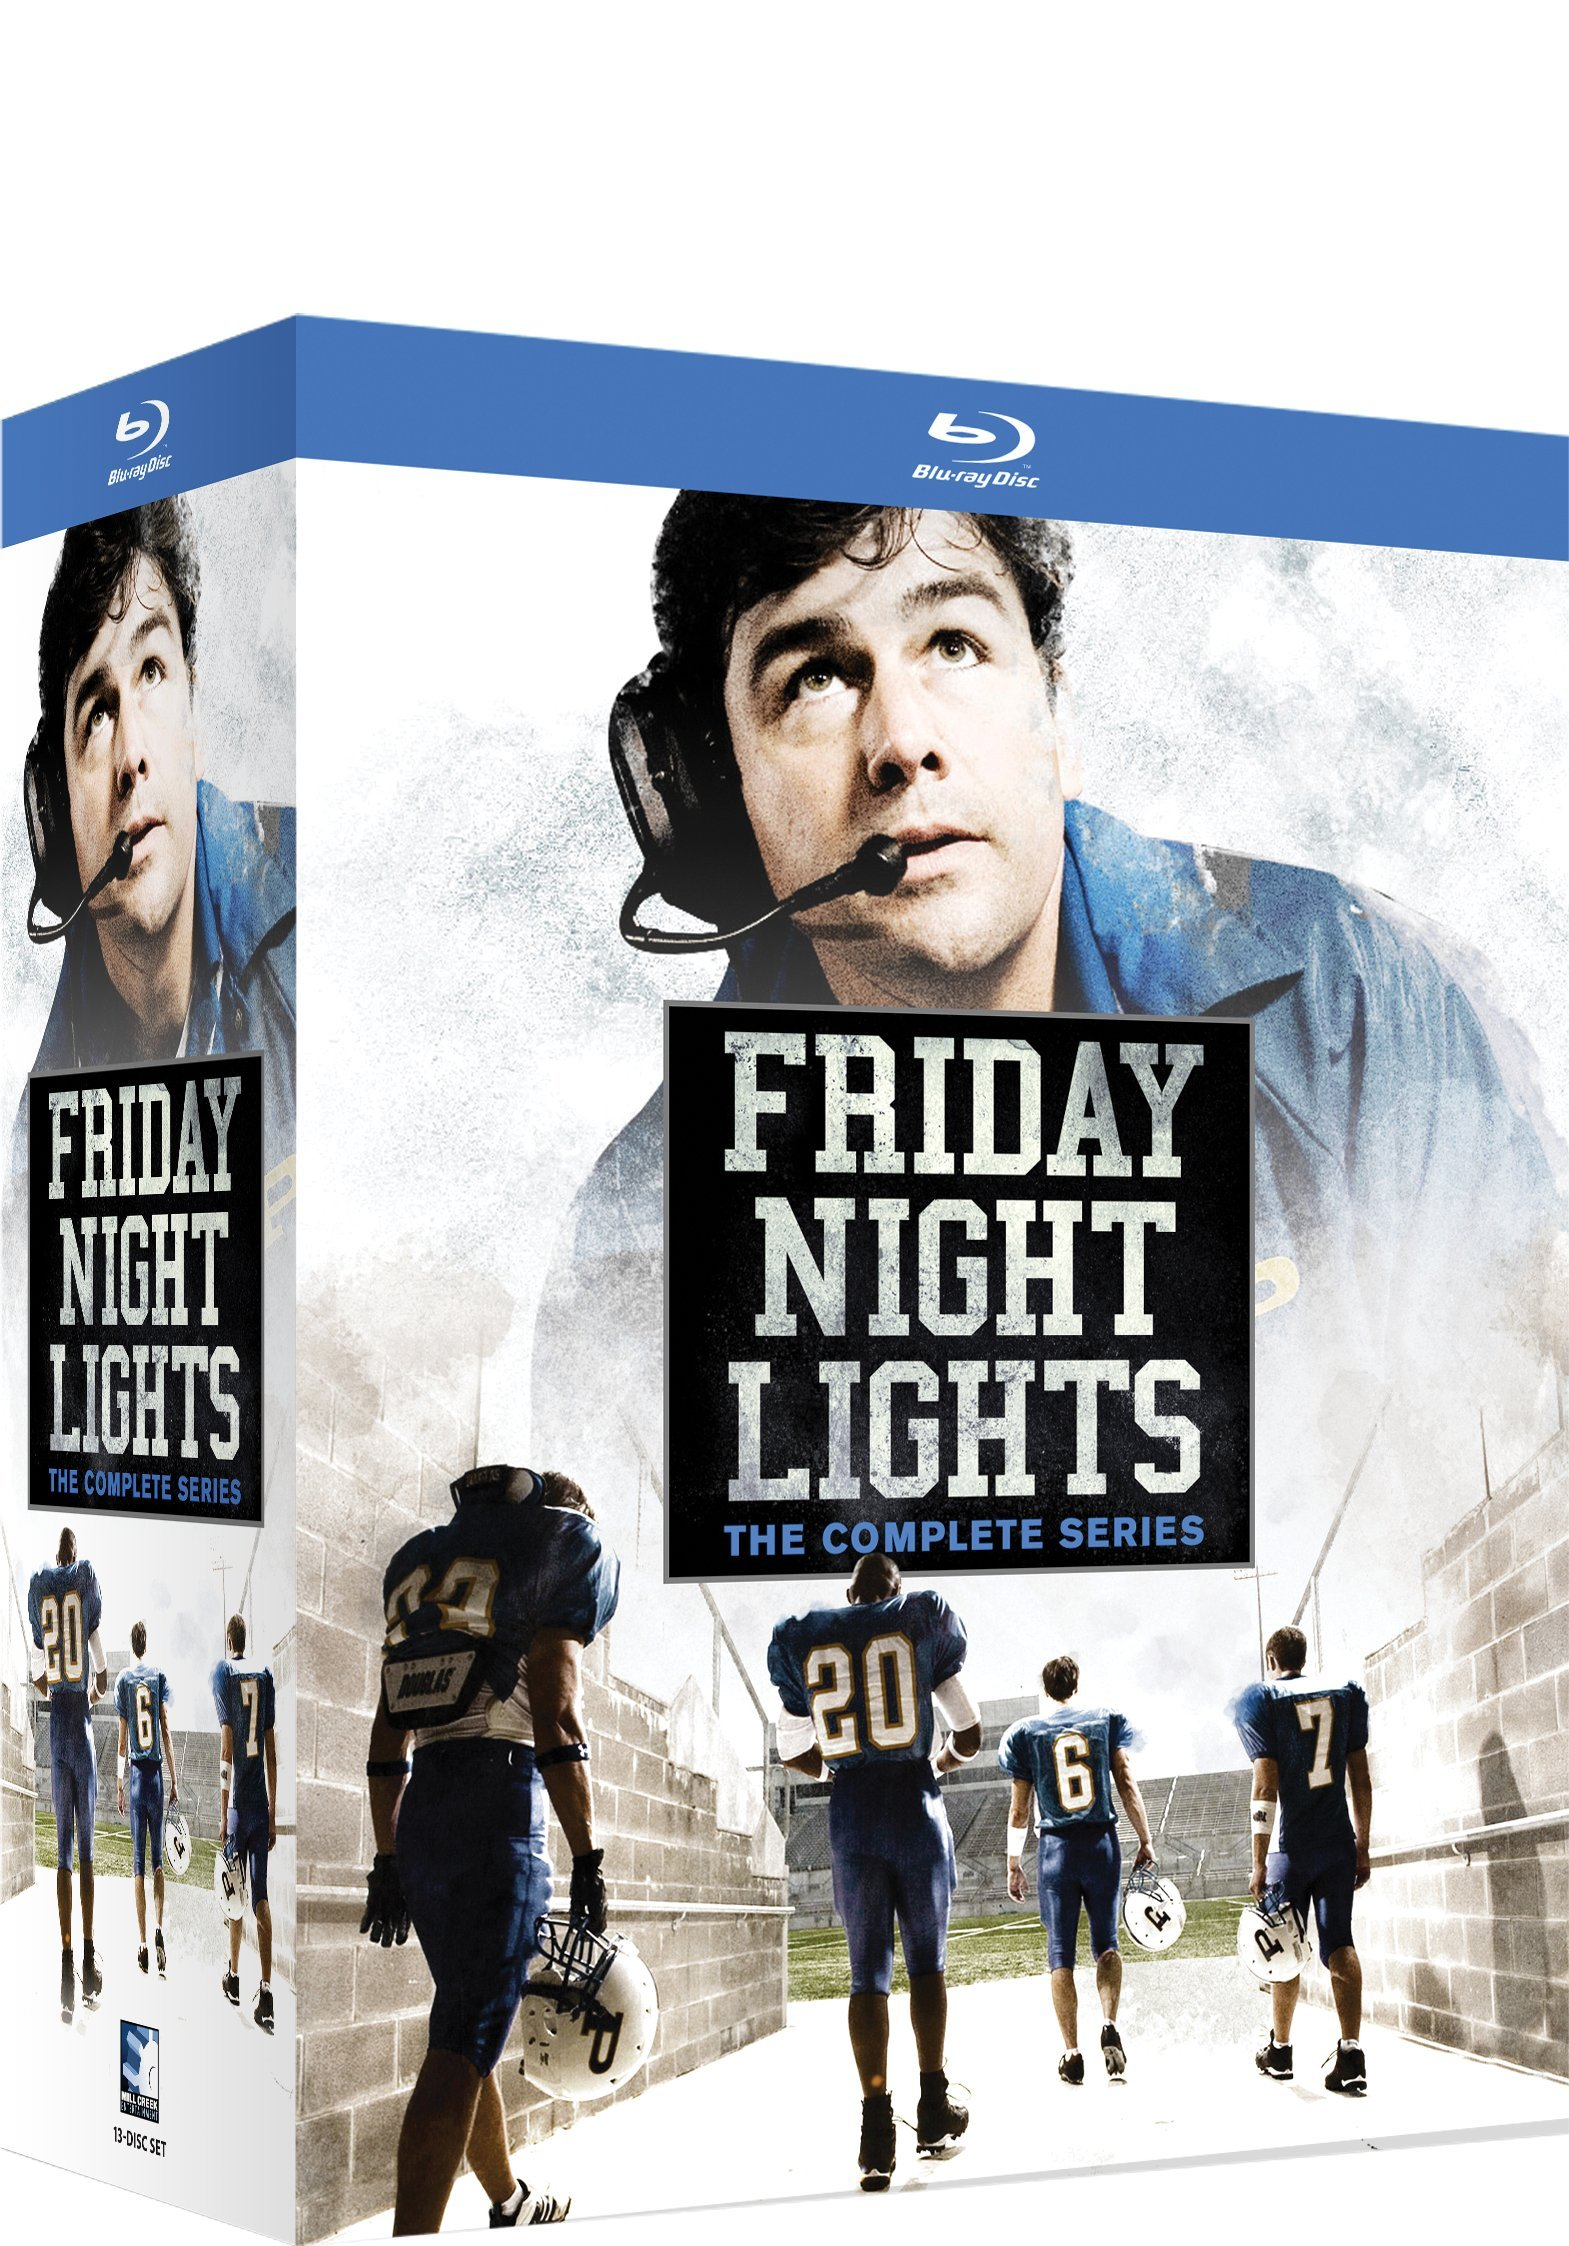 Friday Night Lights - The Complete Series - Blu-ray by Mill Creek